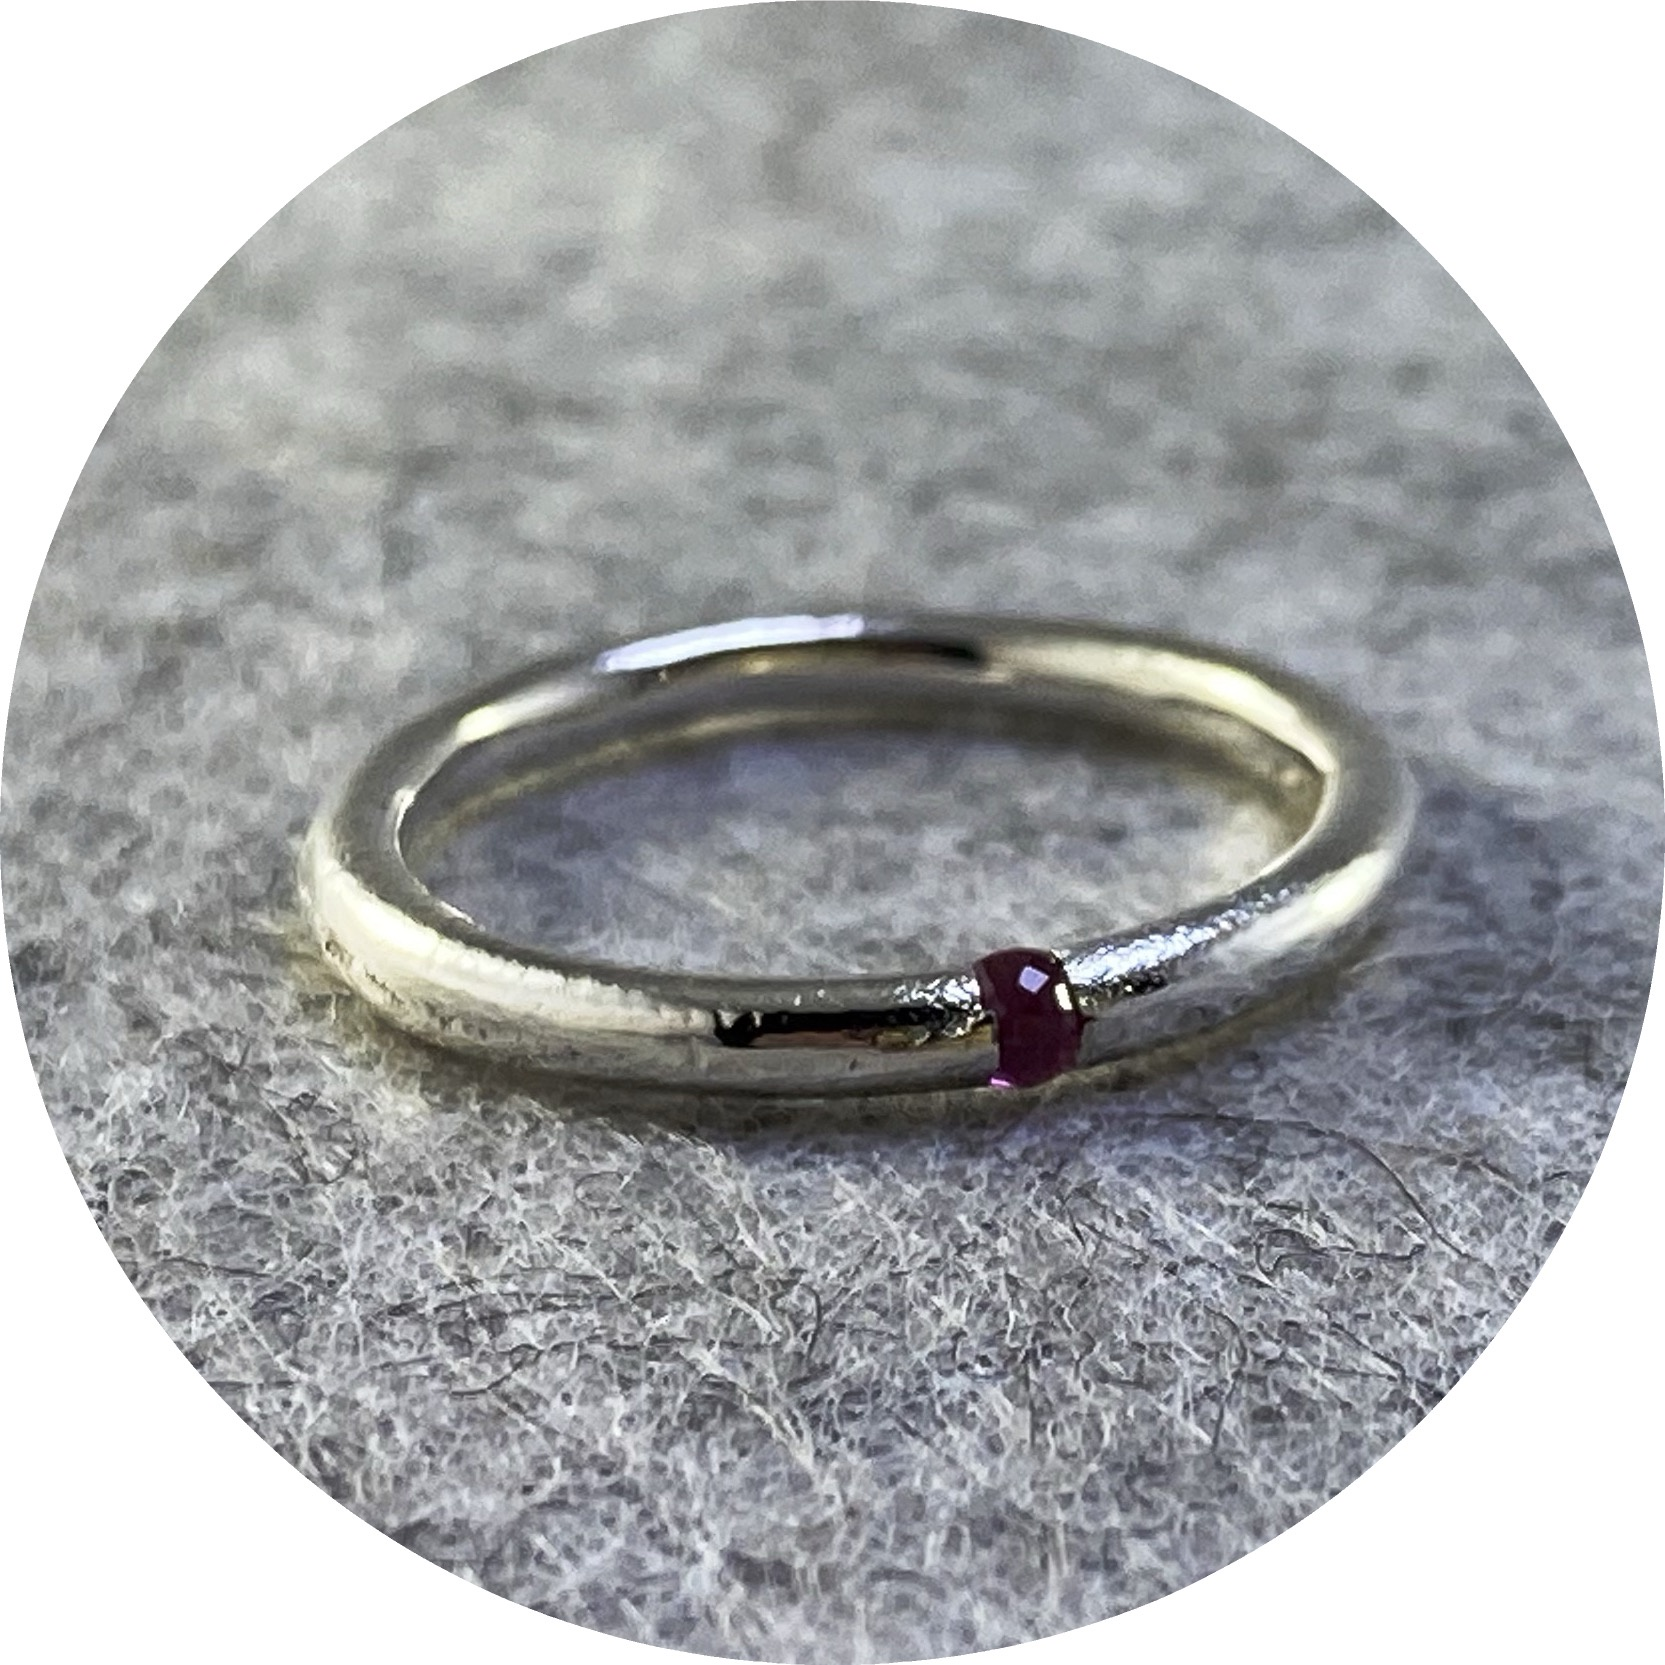 Kirra-Lea Caynes- Ruby ring, sand cast in place with sterling silver.  size  L1/2